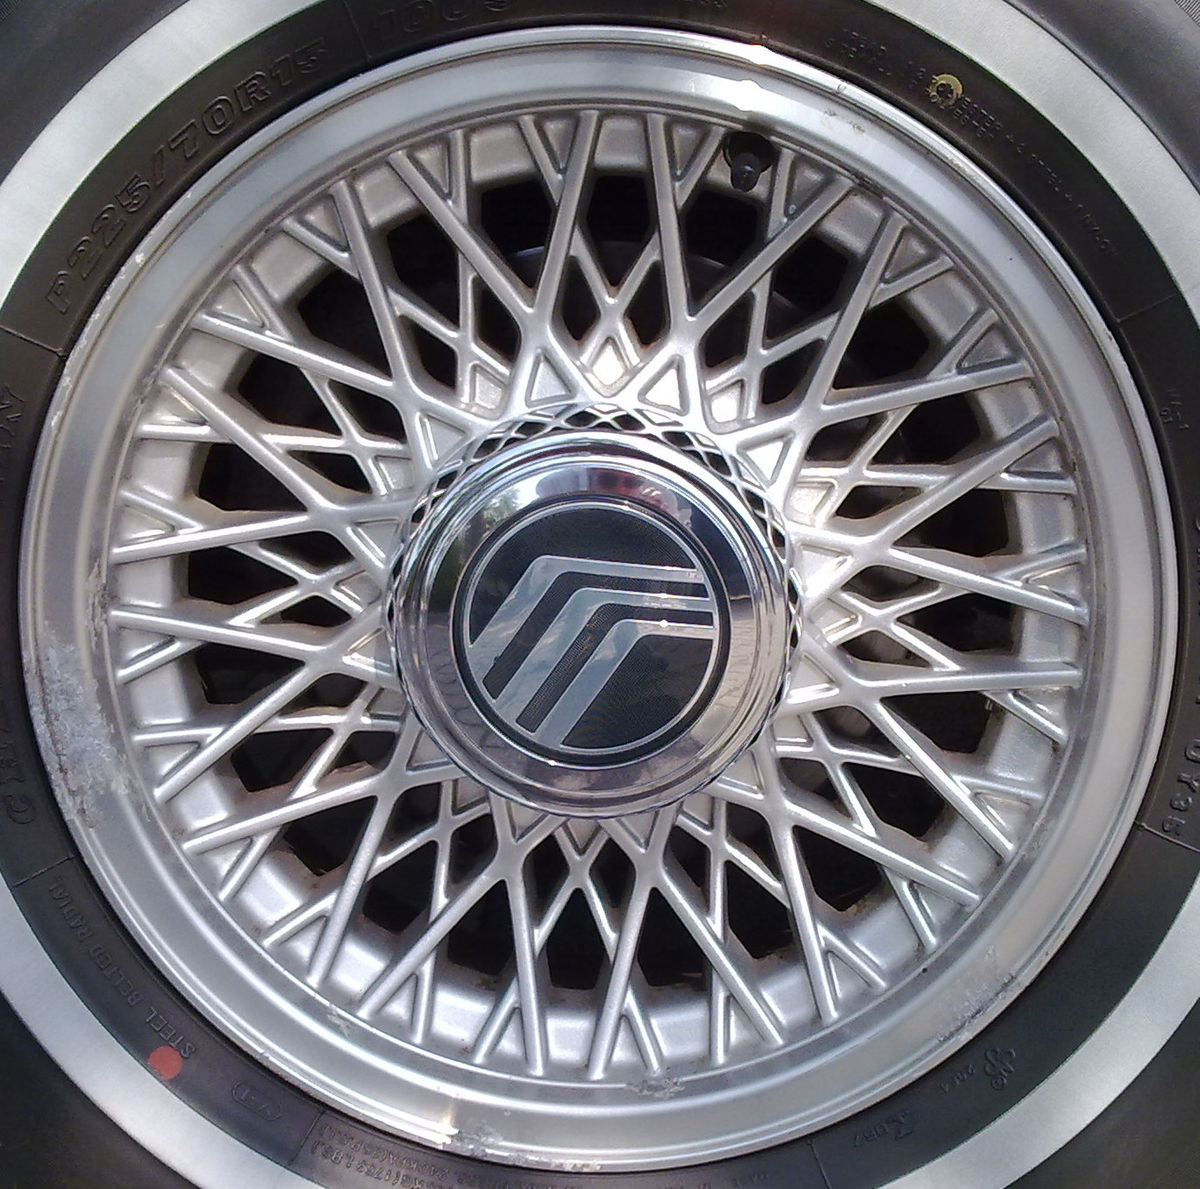 Car Alloy Rims For Sale In Karachi